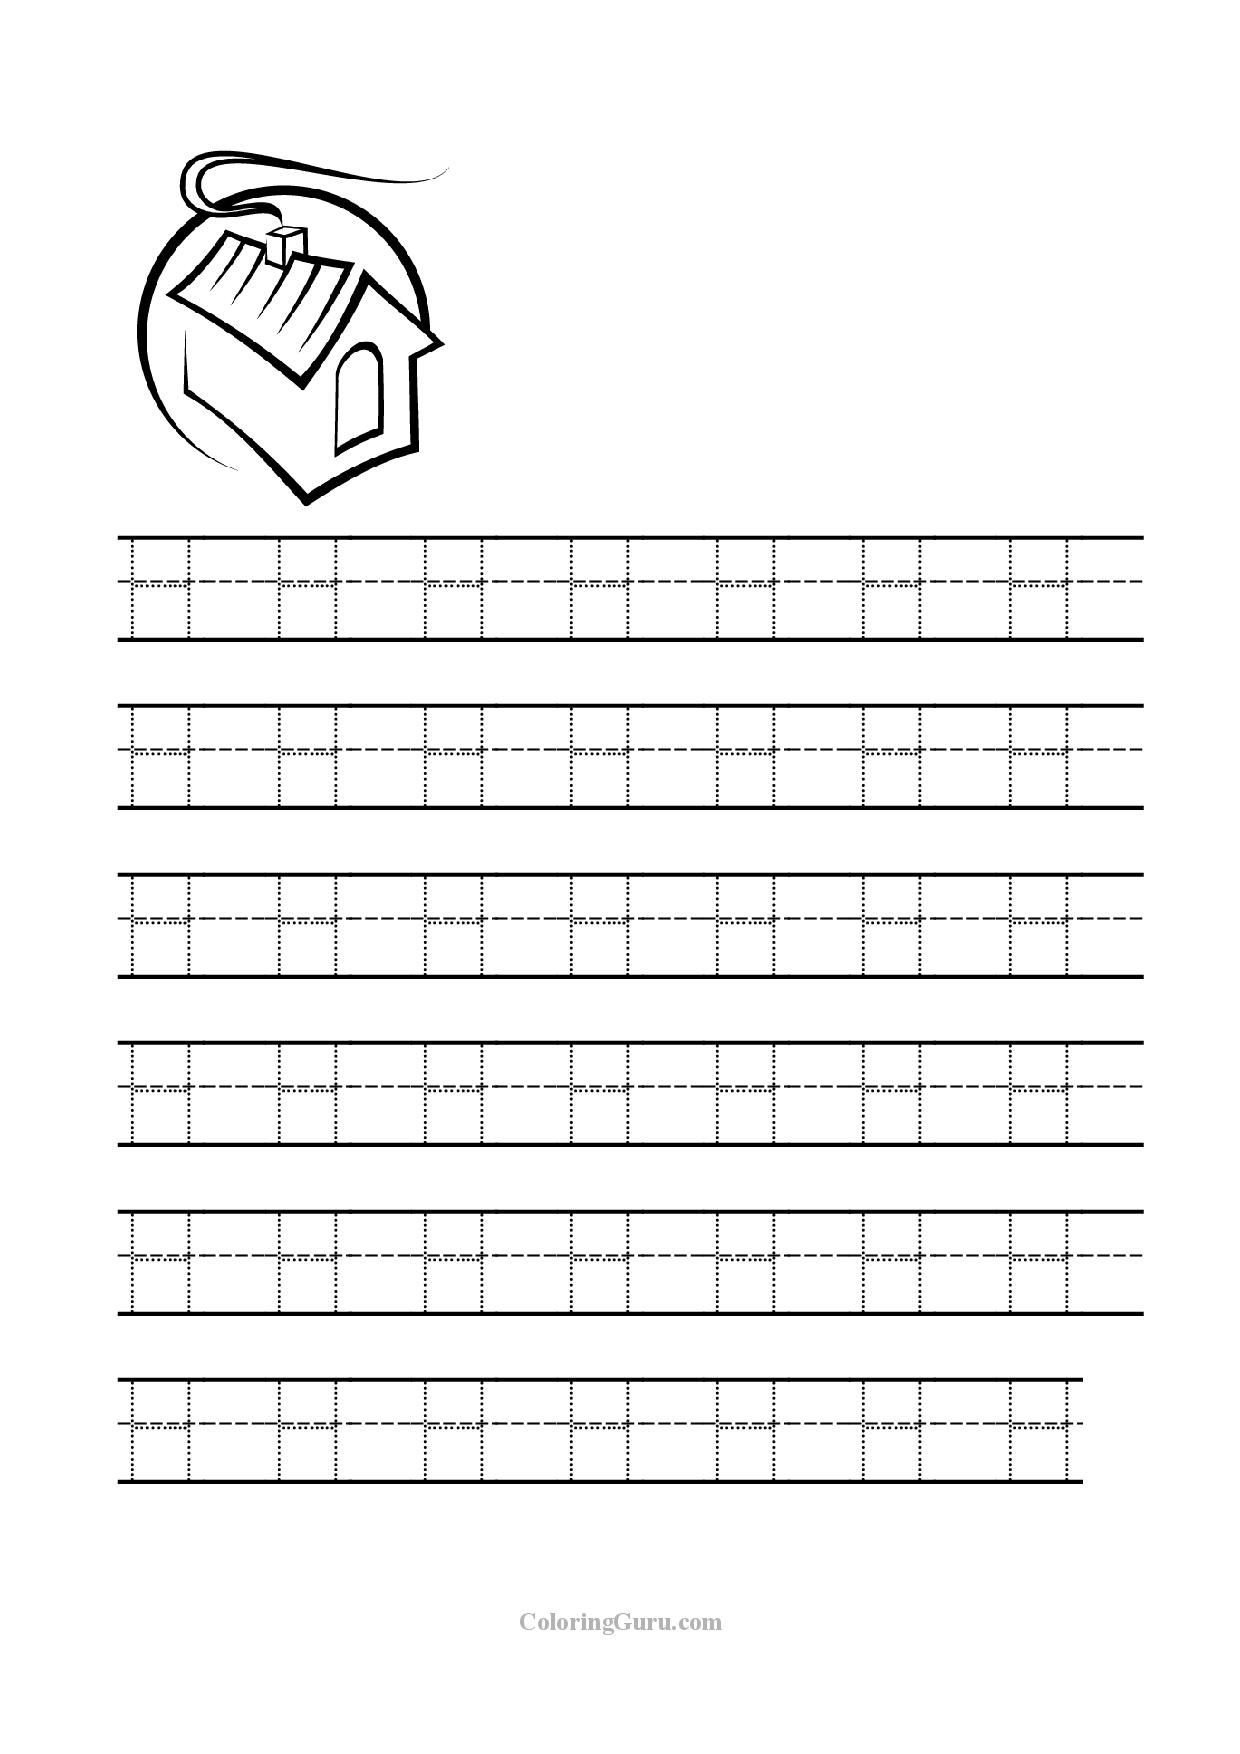 Letter H Worksheets Free Letter H Tracing Worksheets Worksheets for All